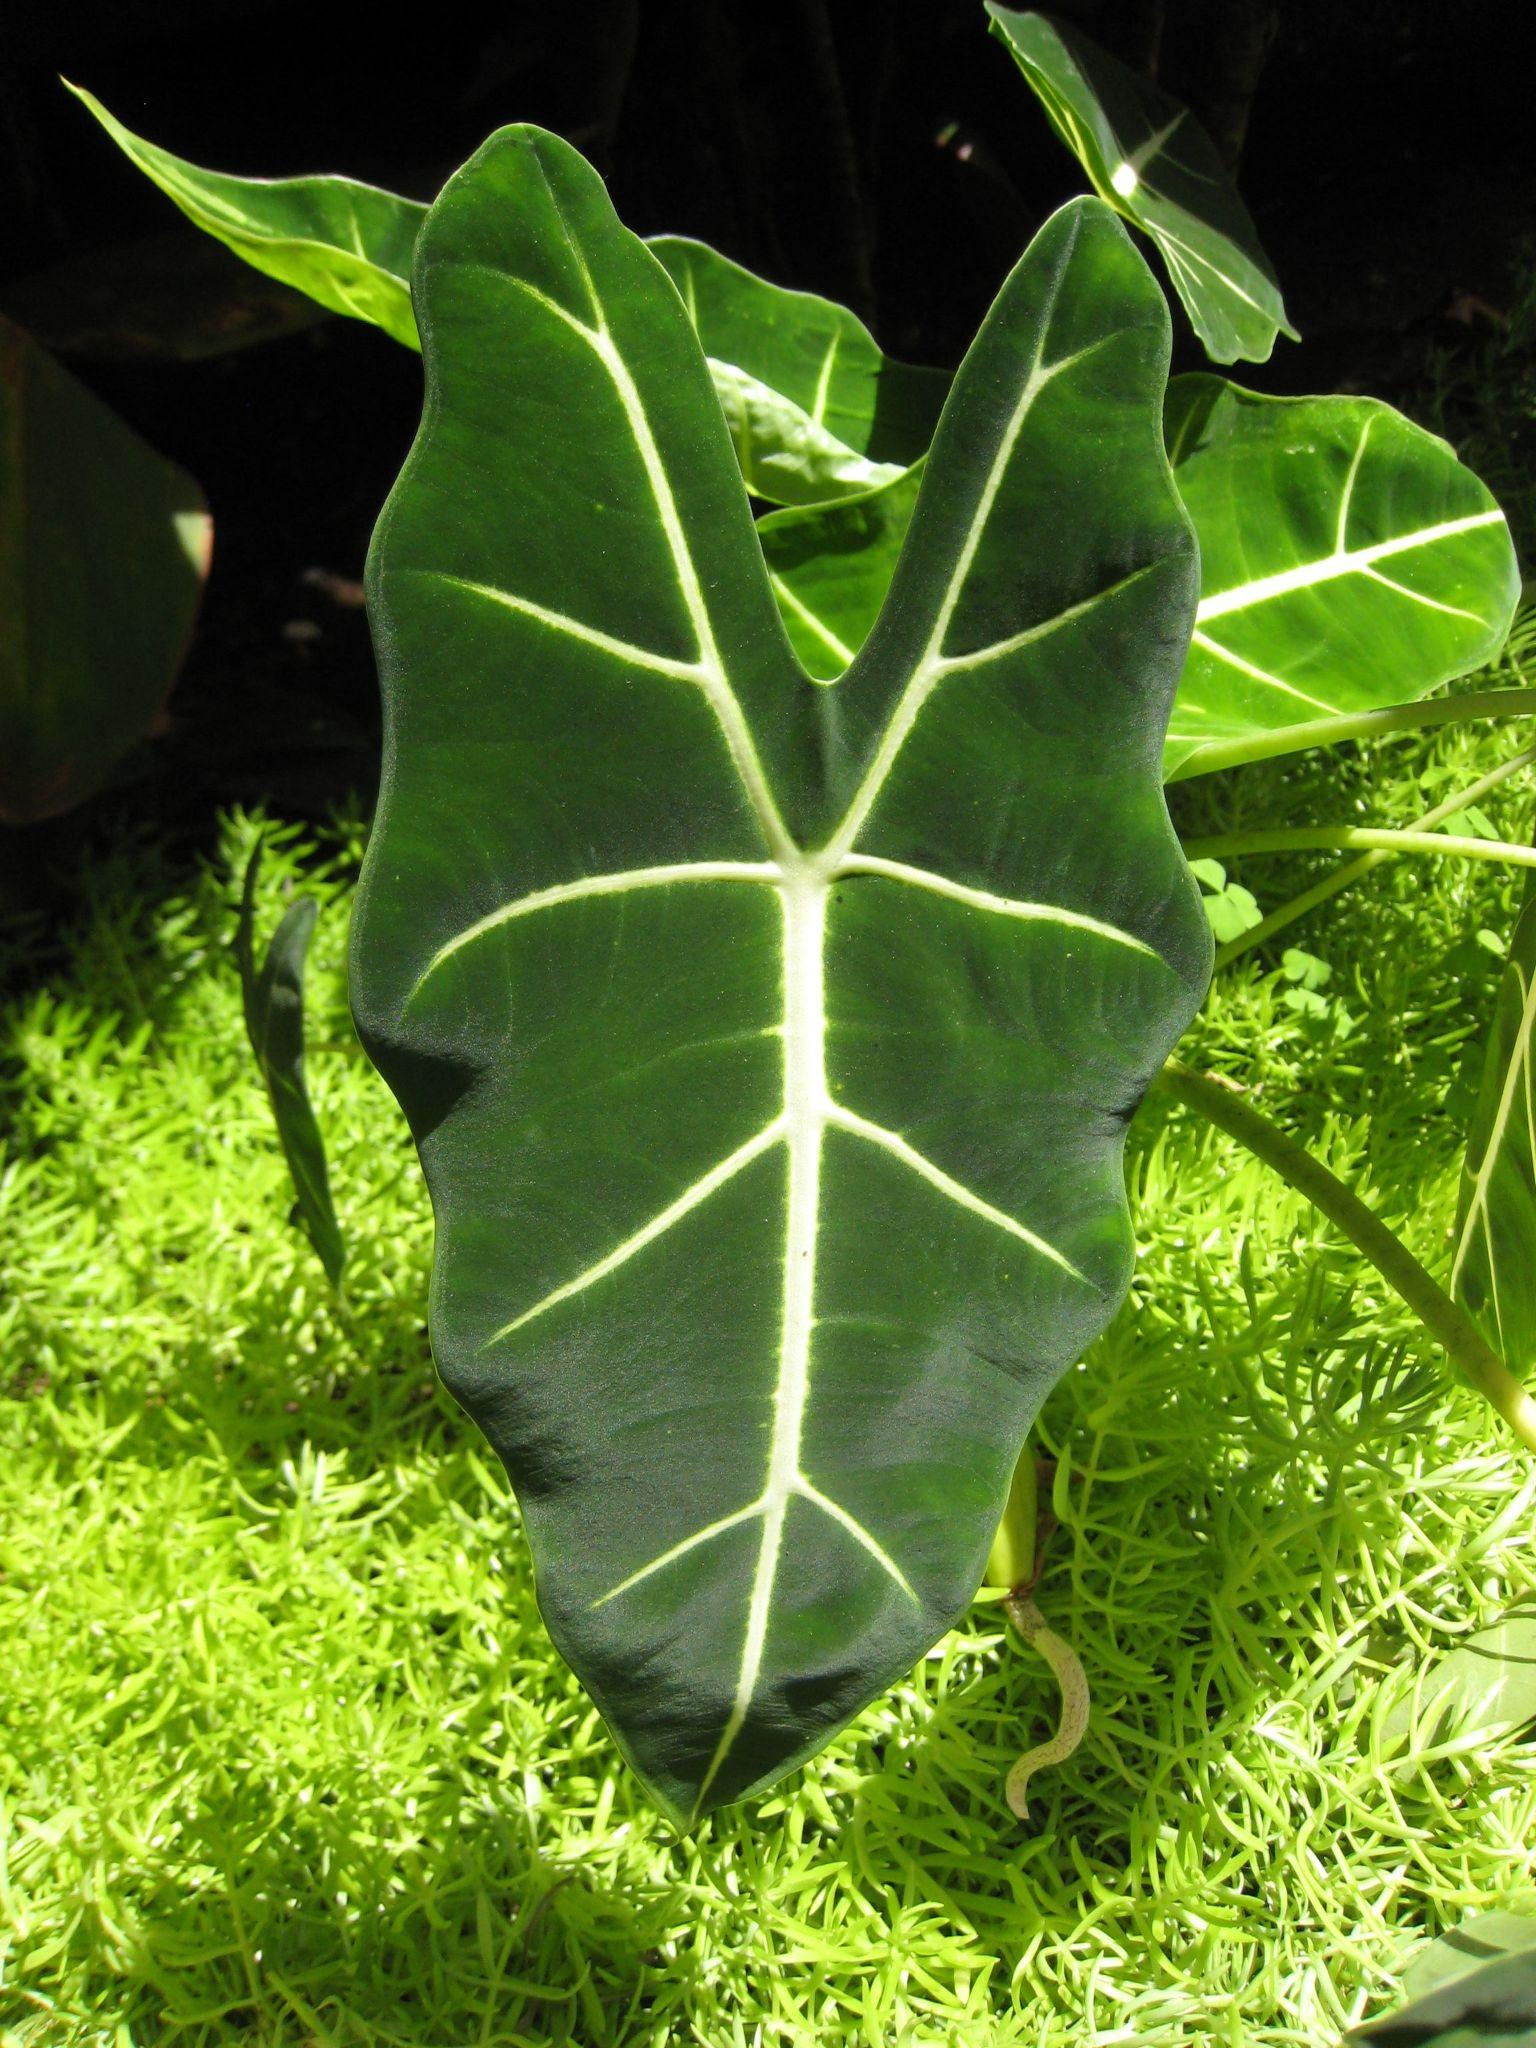 Alocasia Regal Shields: Care And Propagation Tips For Beginners